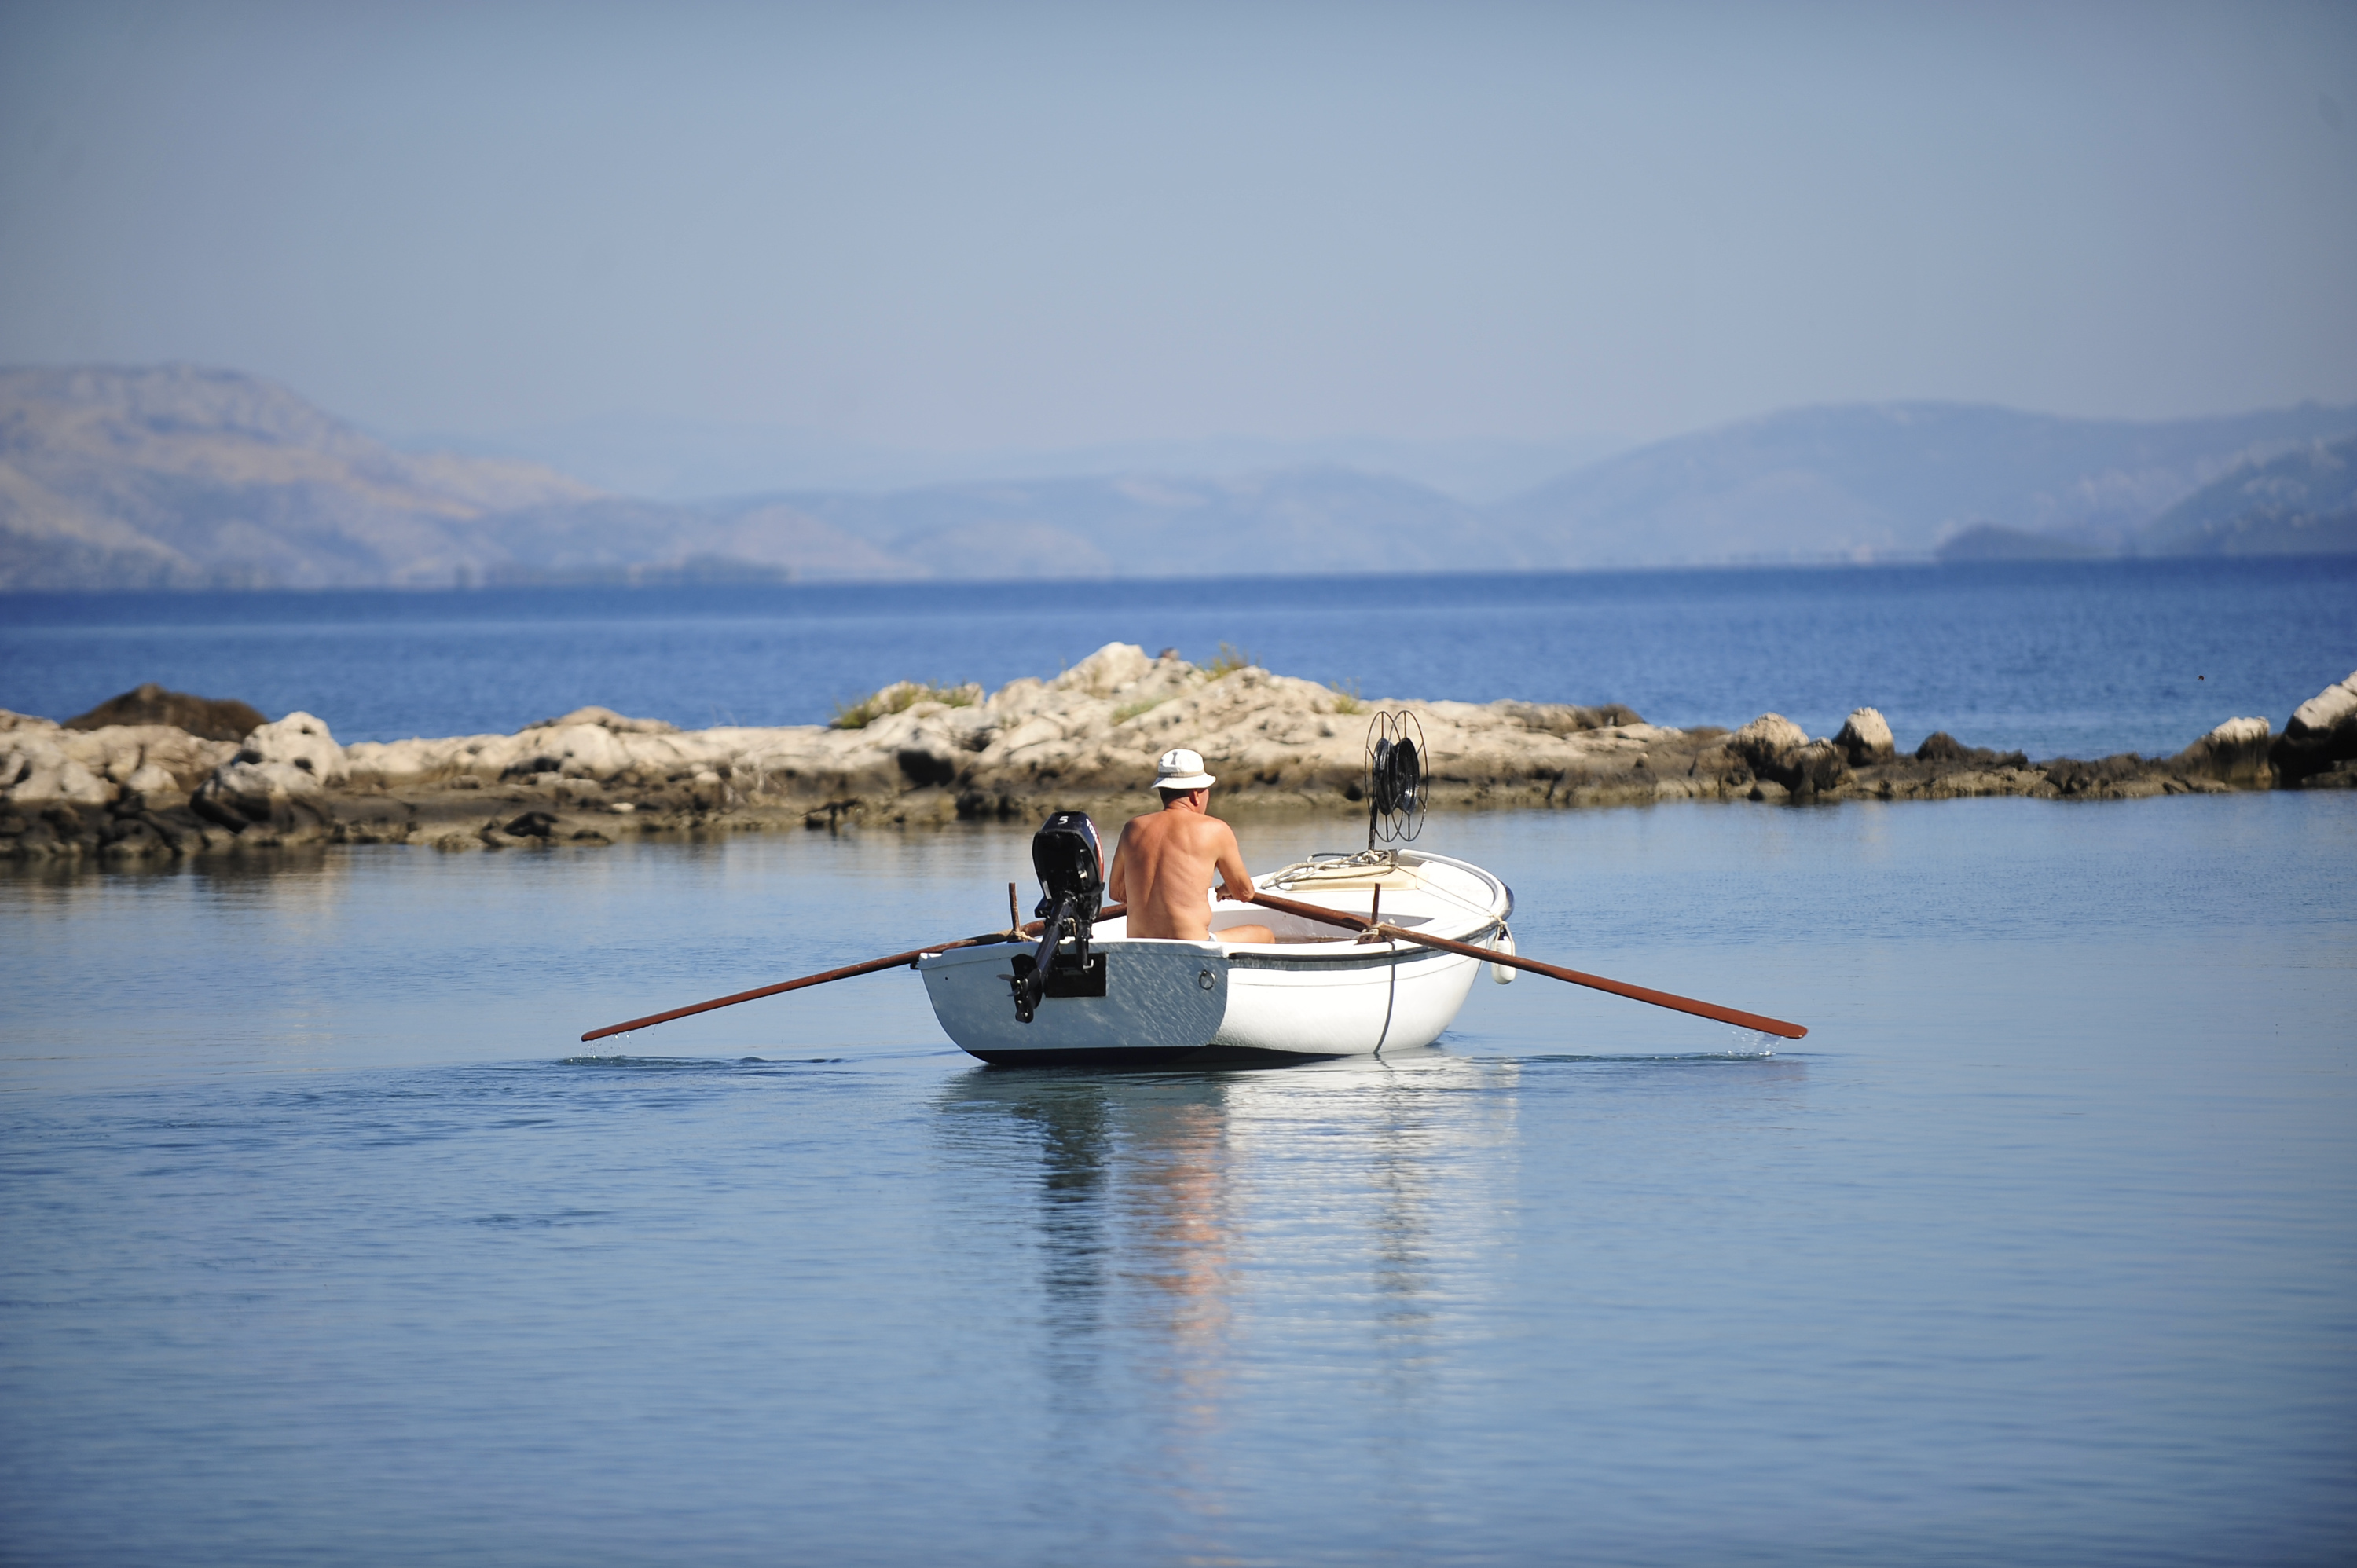 Trpanj, rowing, boat, sea, fisherman